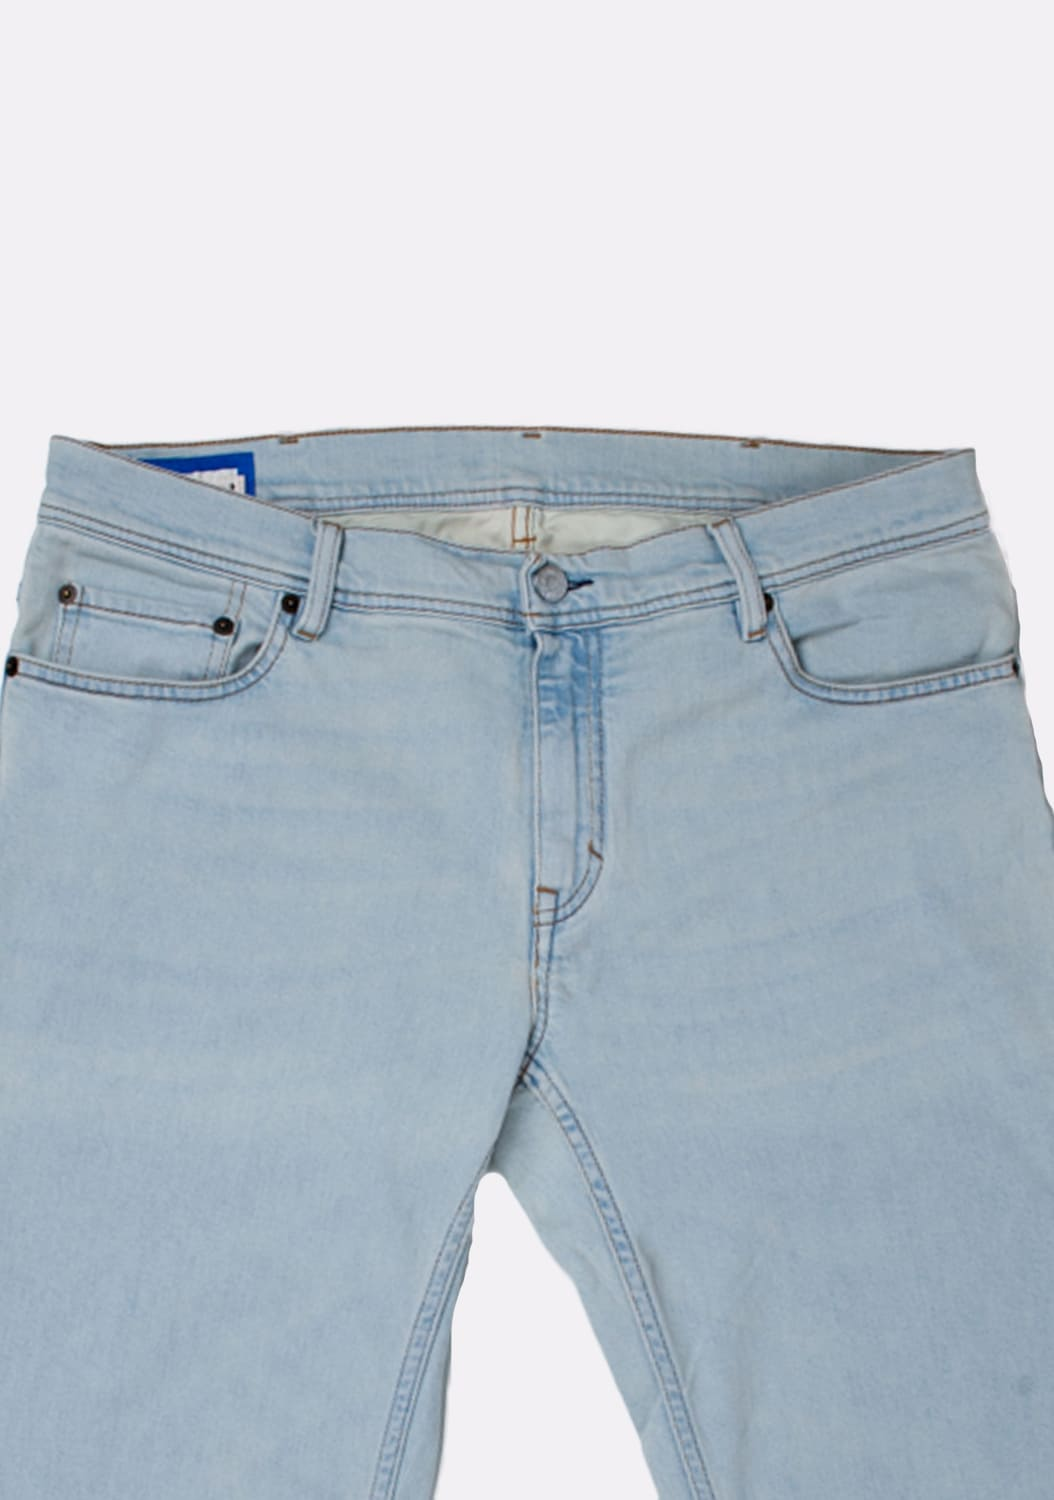 Acne-Studios-Blå-Konst-North-Lt-Blue-34-32-urock-dzinsai (3)